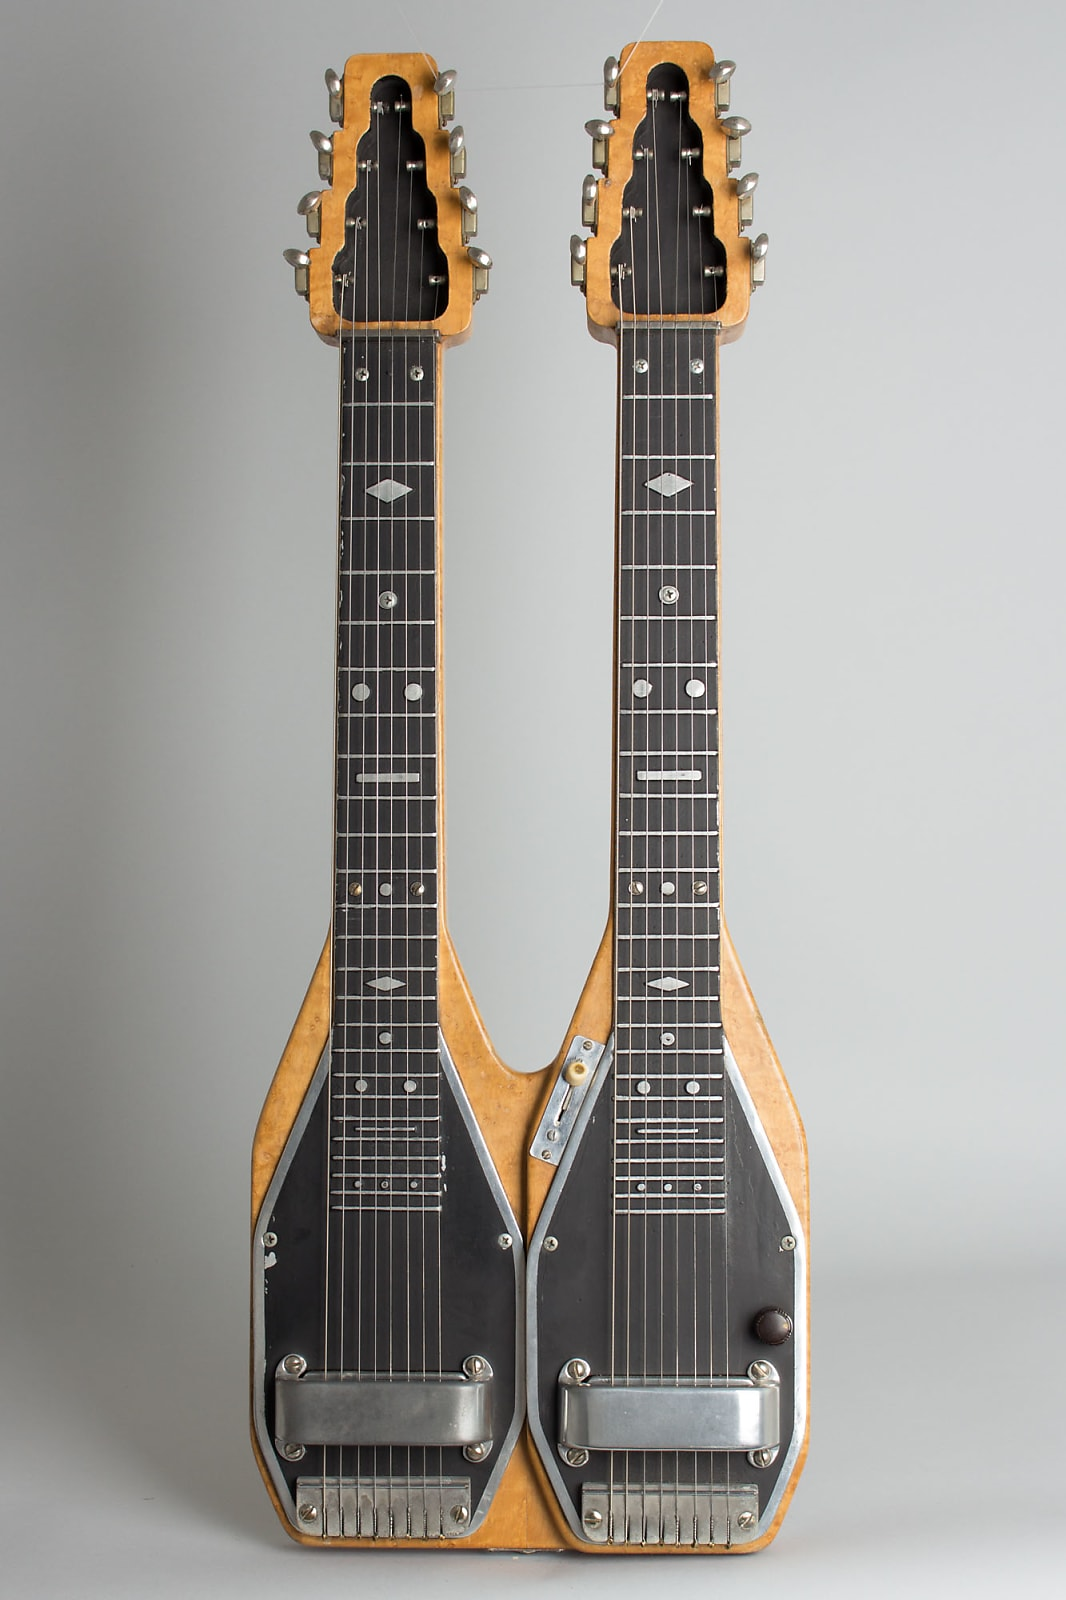 Bigsby  D-8 Doubleneck, Owned and played by Joaquin Murphey & Ardell Thomas Lap Steel Electric Guitar (1948), ser. #122048, original black hard shell case.